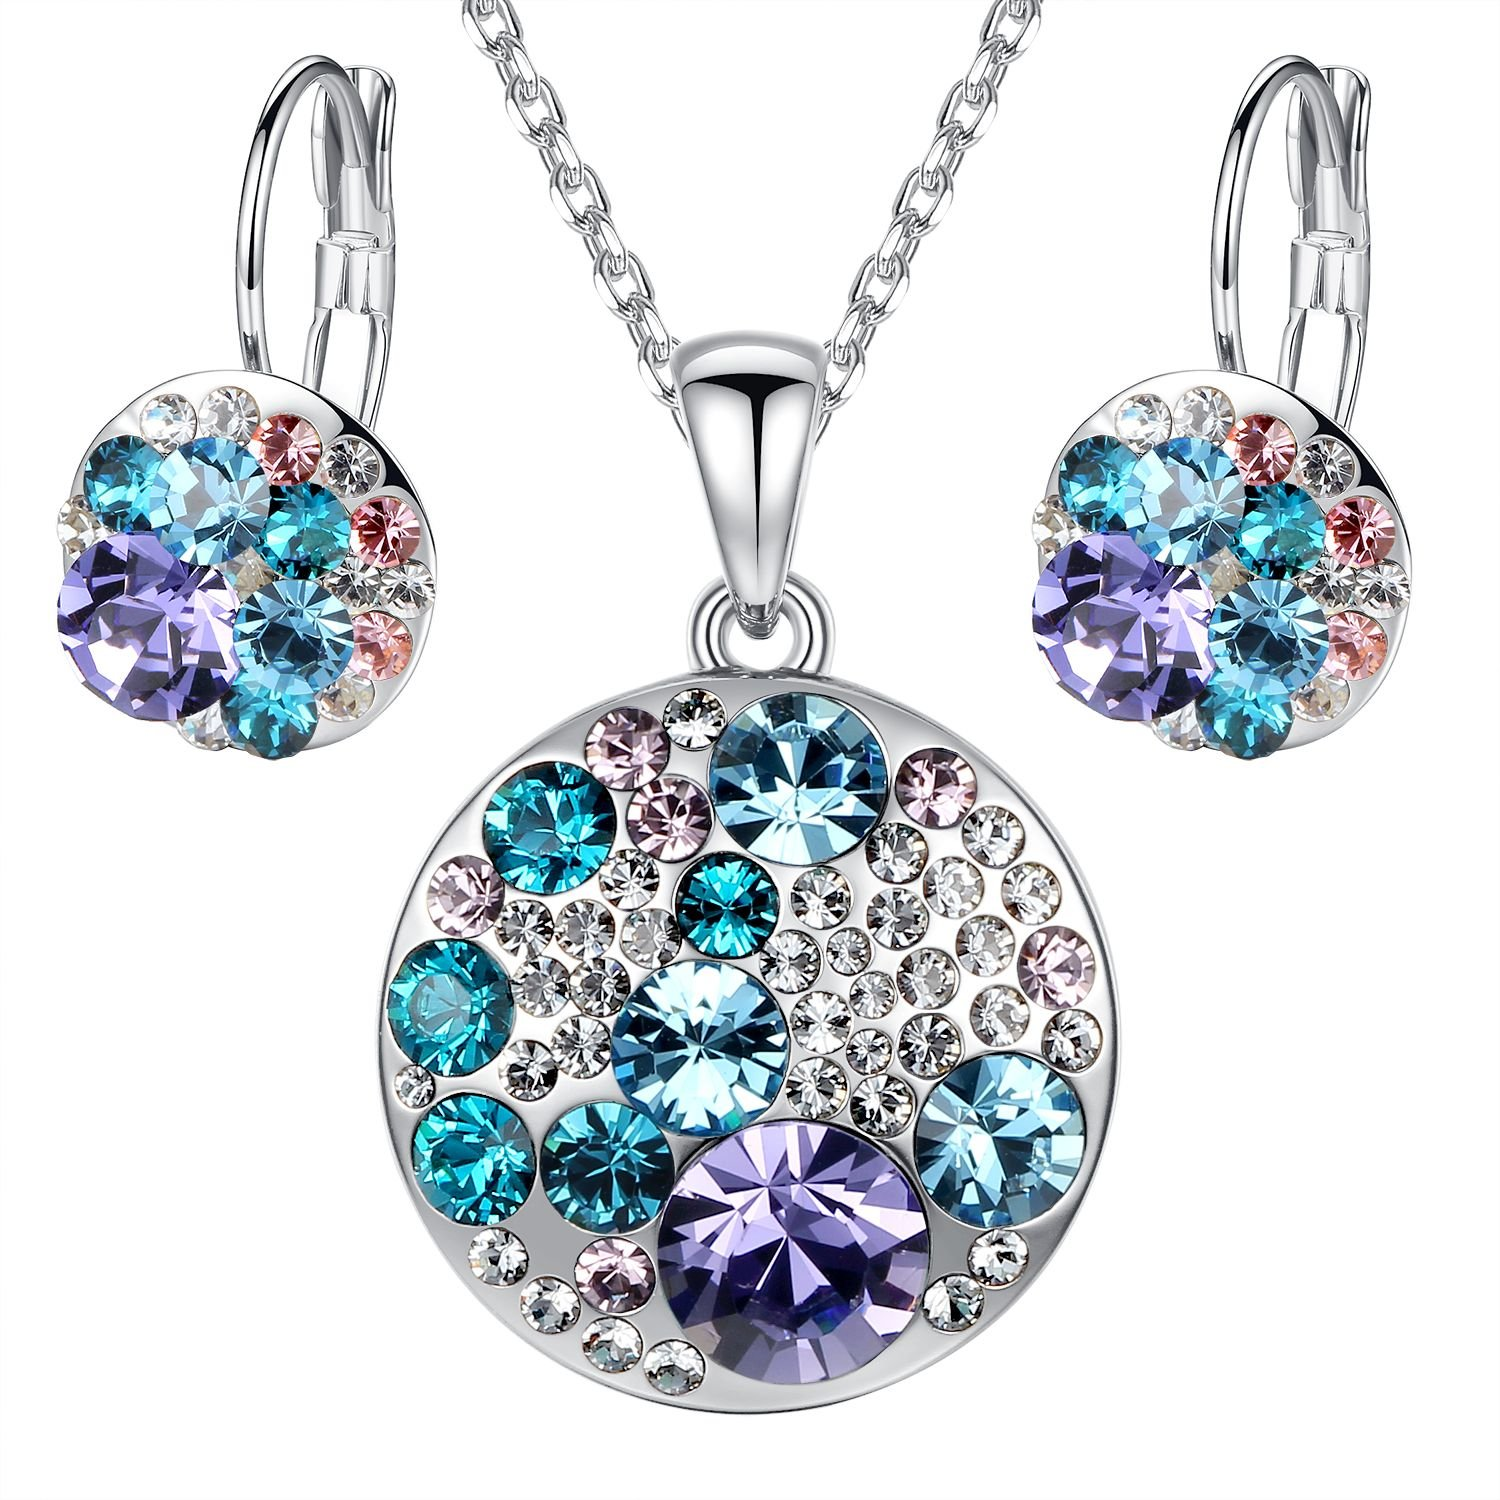 """Ocean Bubble"" Multi-stone Circle Pendant Necklace Earring Jewelry Set Made with Crystals from Swarovski, 18"" + 2"" Extender"